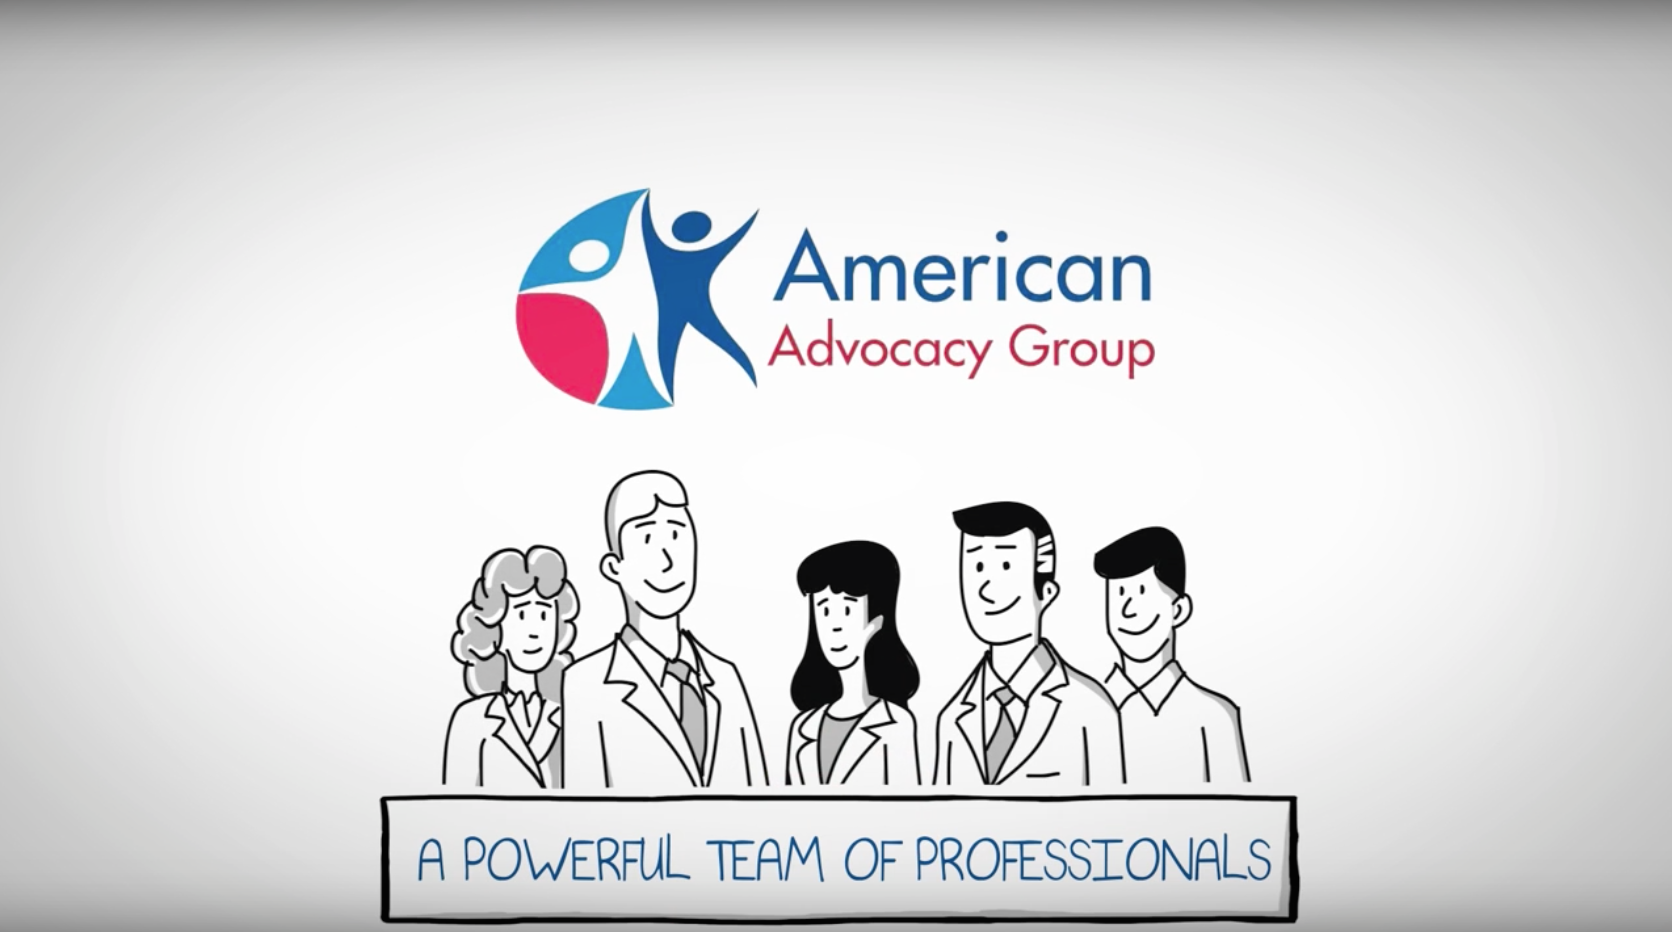 American Advocacy Group